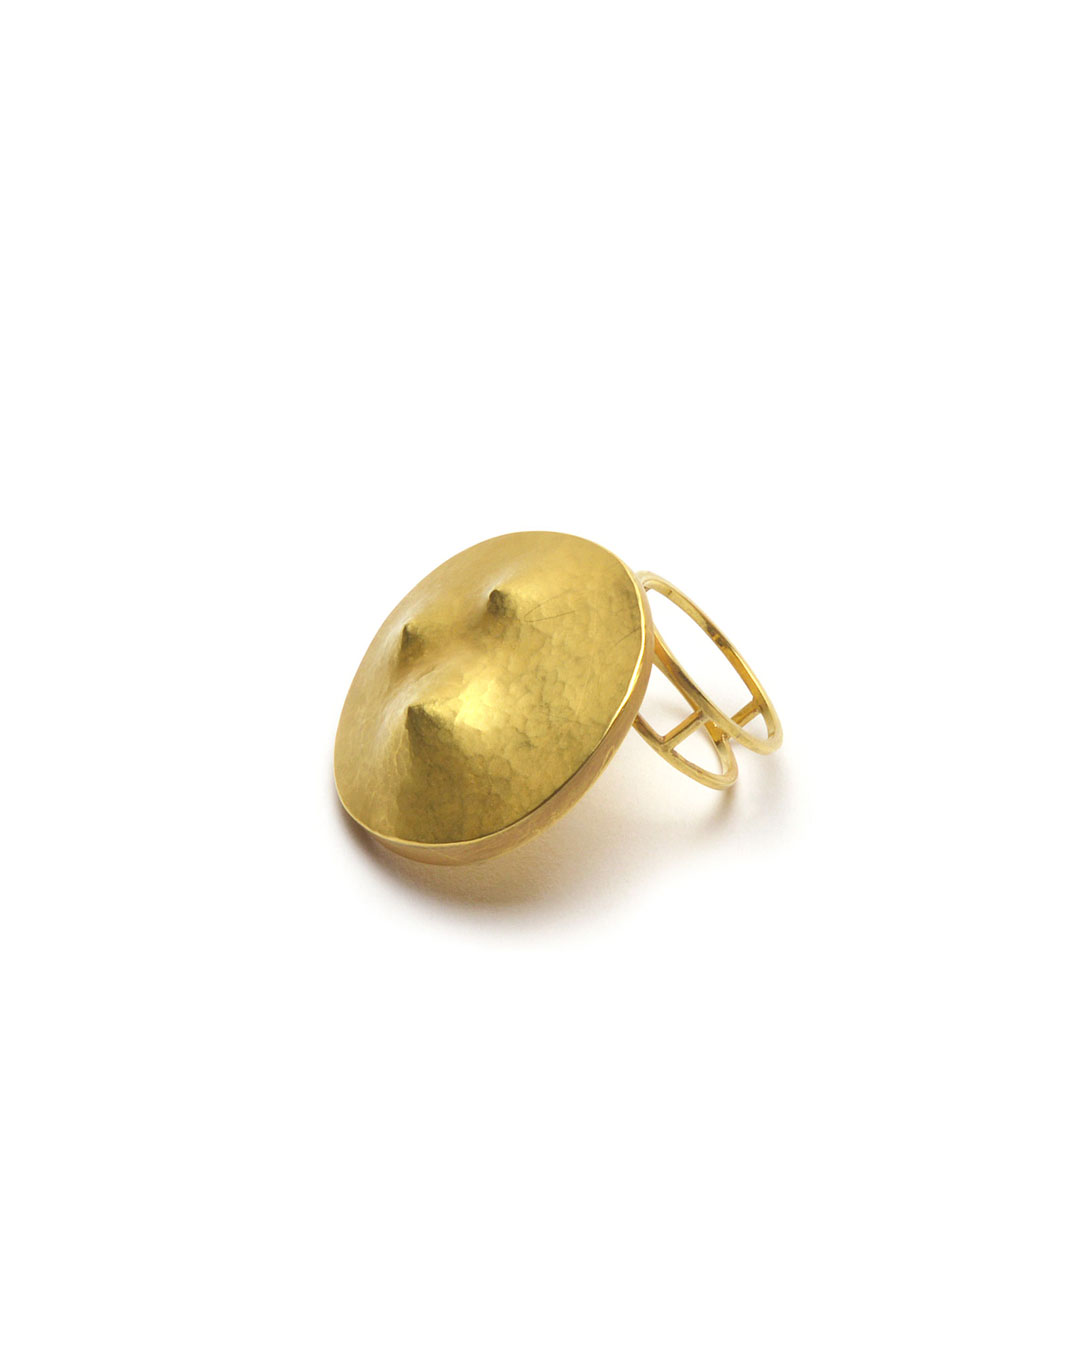 Stefano Marchetti, untitled, 2014, ring; gold, 27 x 32 x 31 mm, €3900